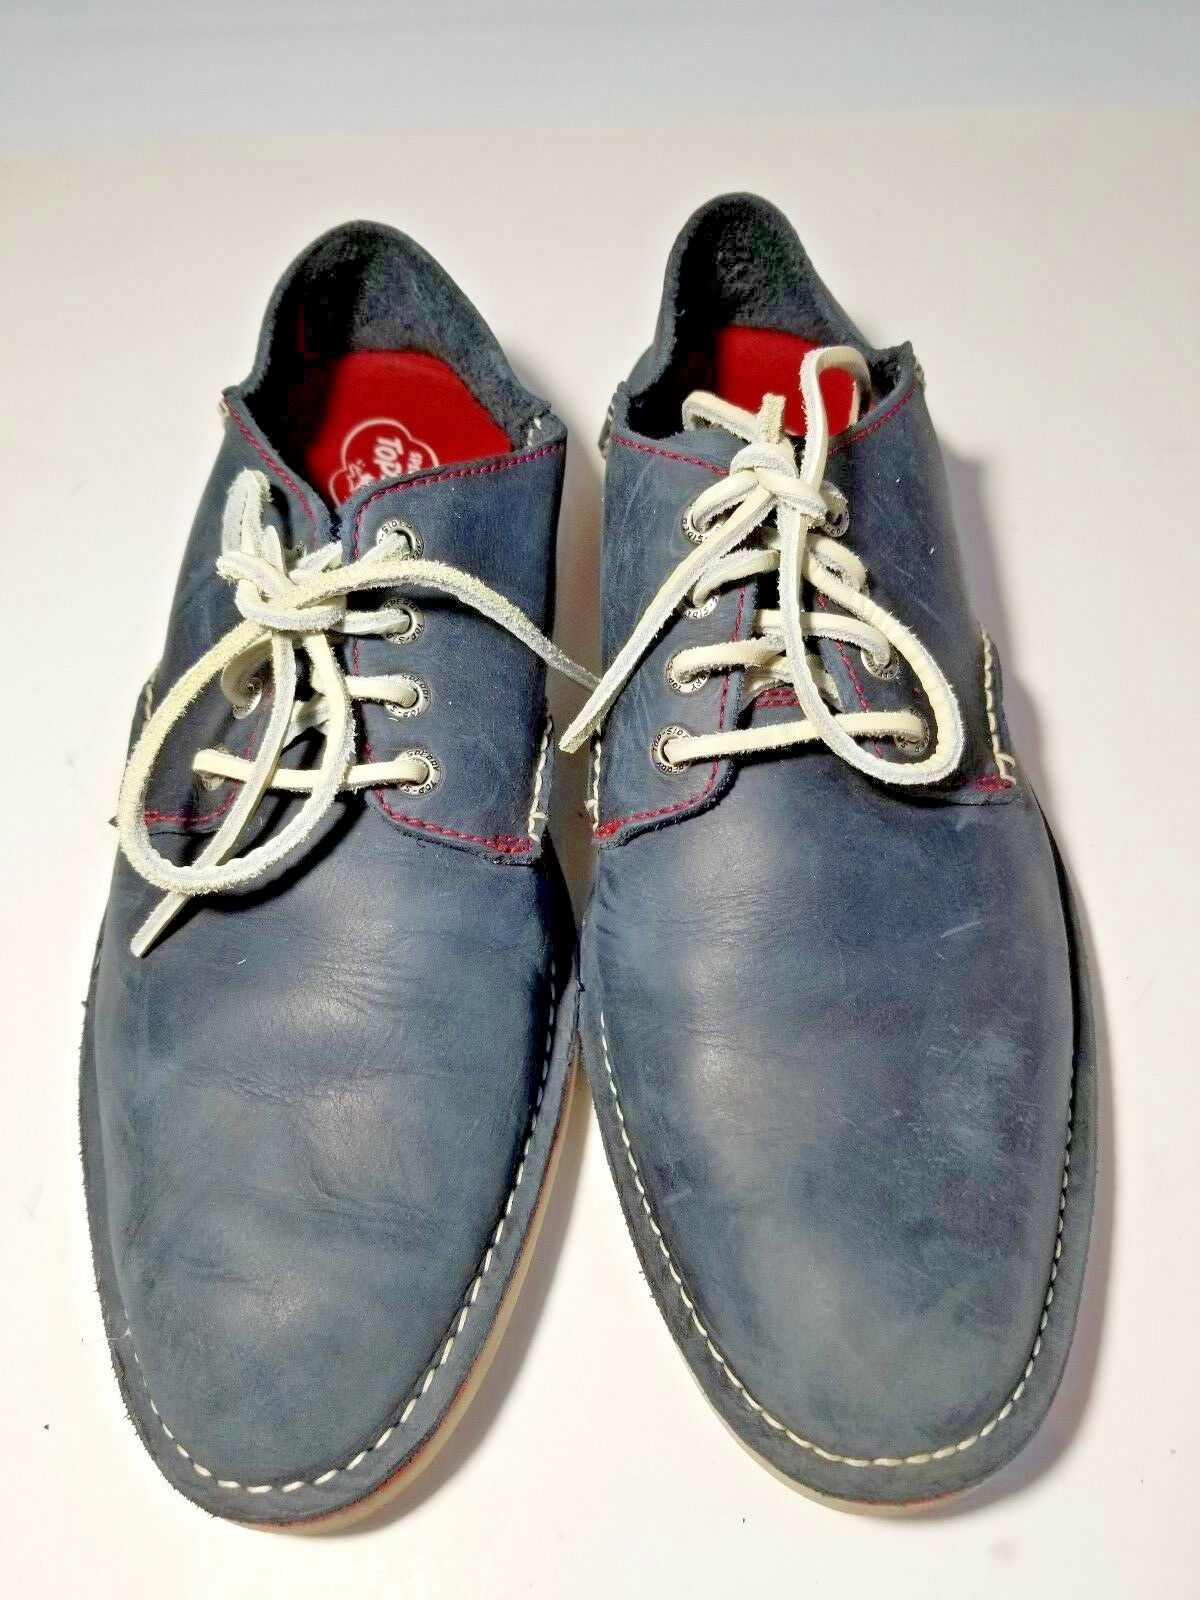 Sperry Men's Top-Sider Soft bluee Leather Casual shoes W Leather Laces Size 10.5